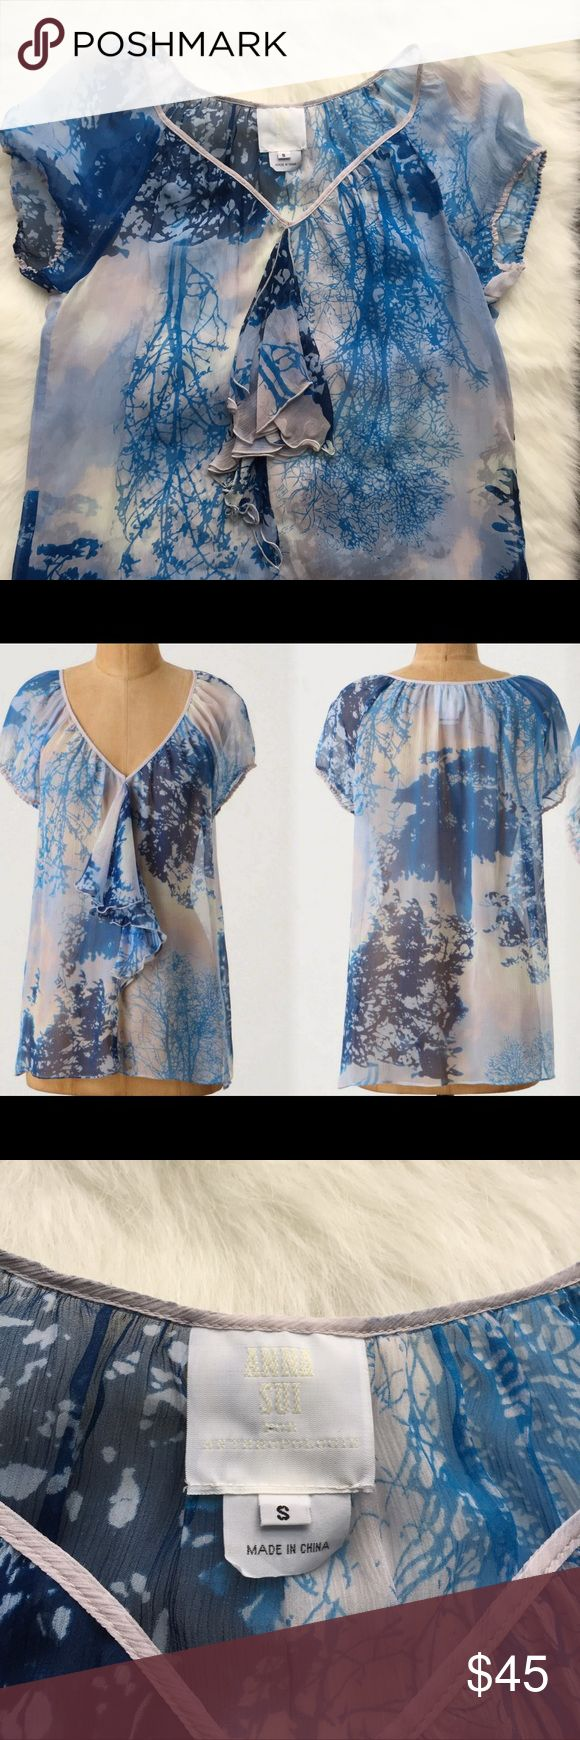 "Anna Sui For Anthropology Starring at the Sky Top Anna Sui For Anthropology Starring at the Sky Top. 100% Silk. Size S. In excellent condition.  27"" Long, 16"" Bust. Anna Sui Tops"